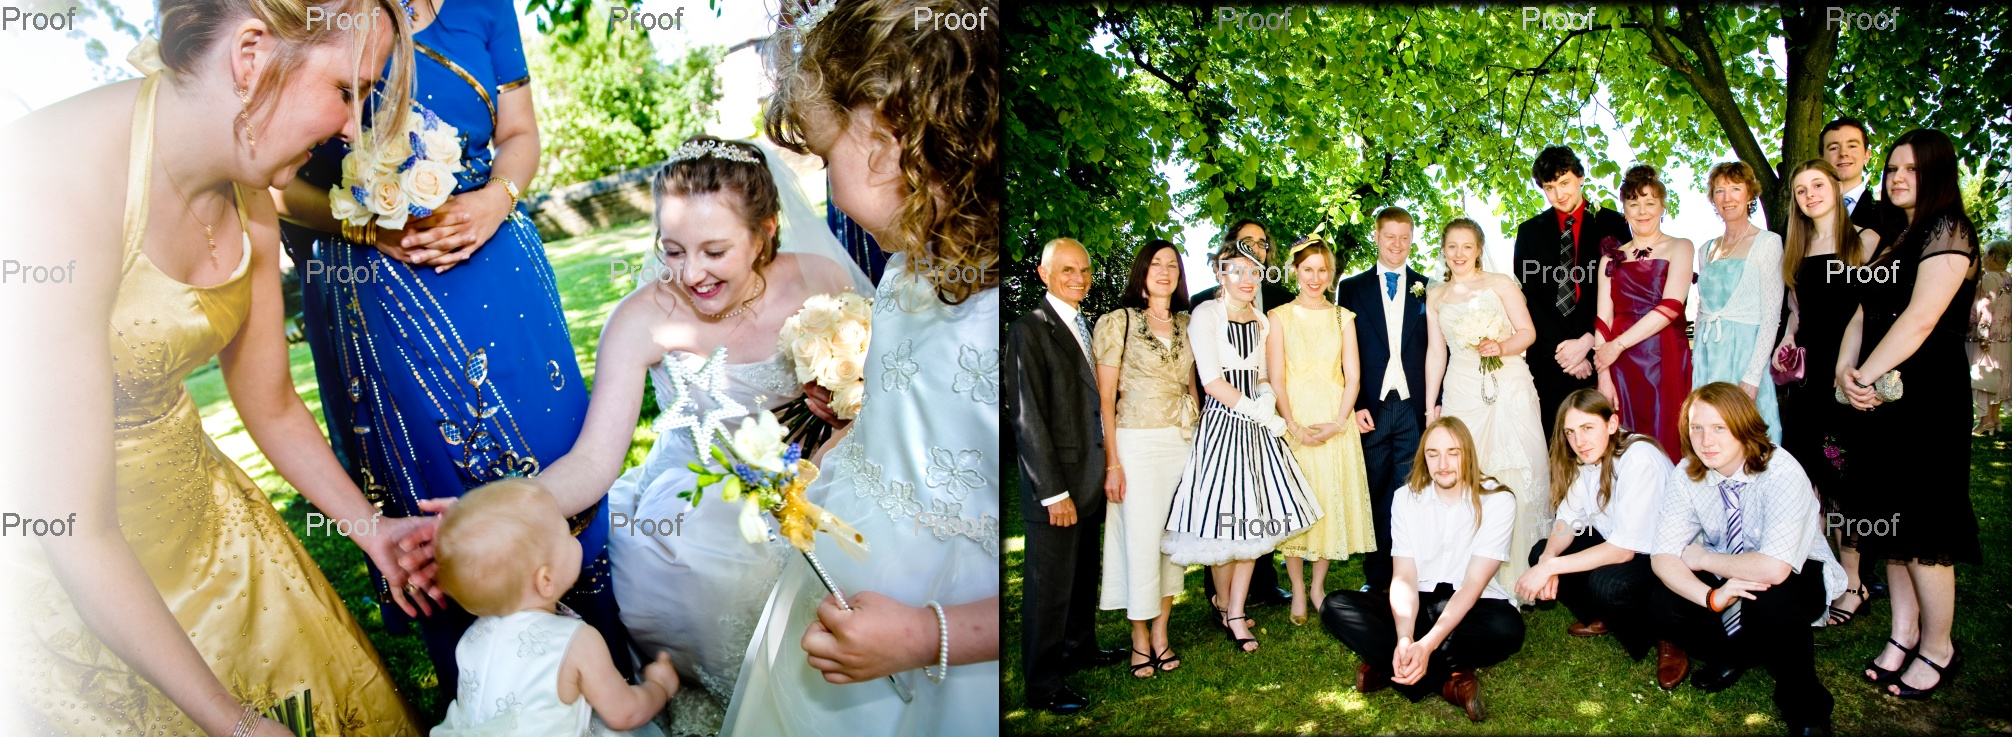 touching wedding pictures outside St Marys Church in Wyke, West Yorkshire. pages 26-27 of storybook